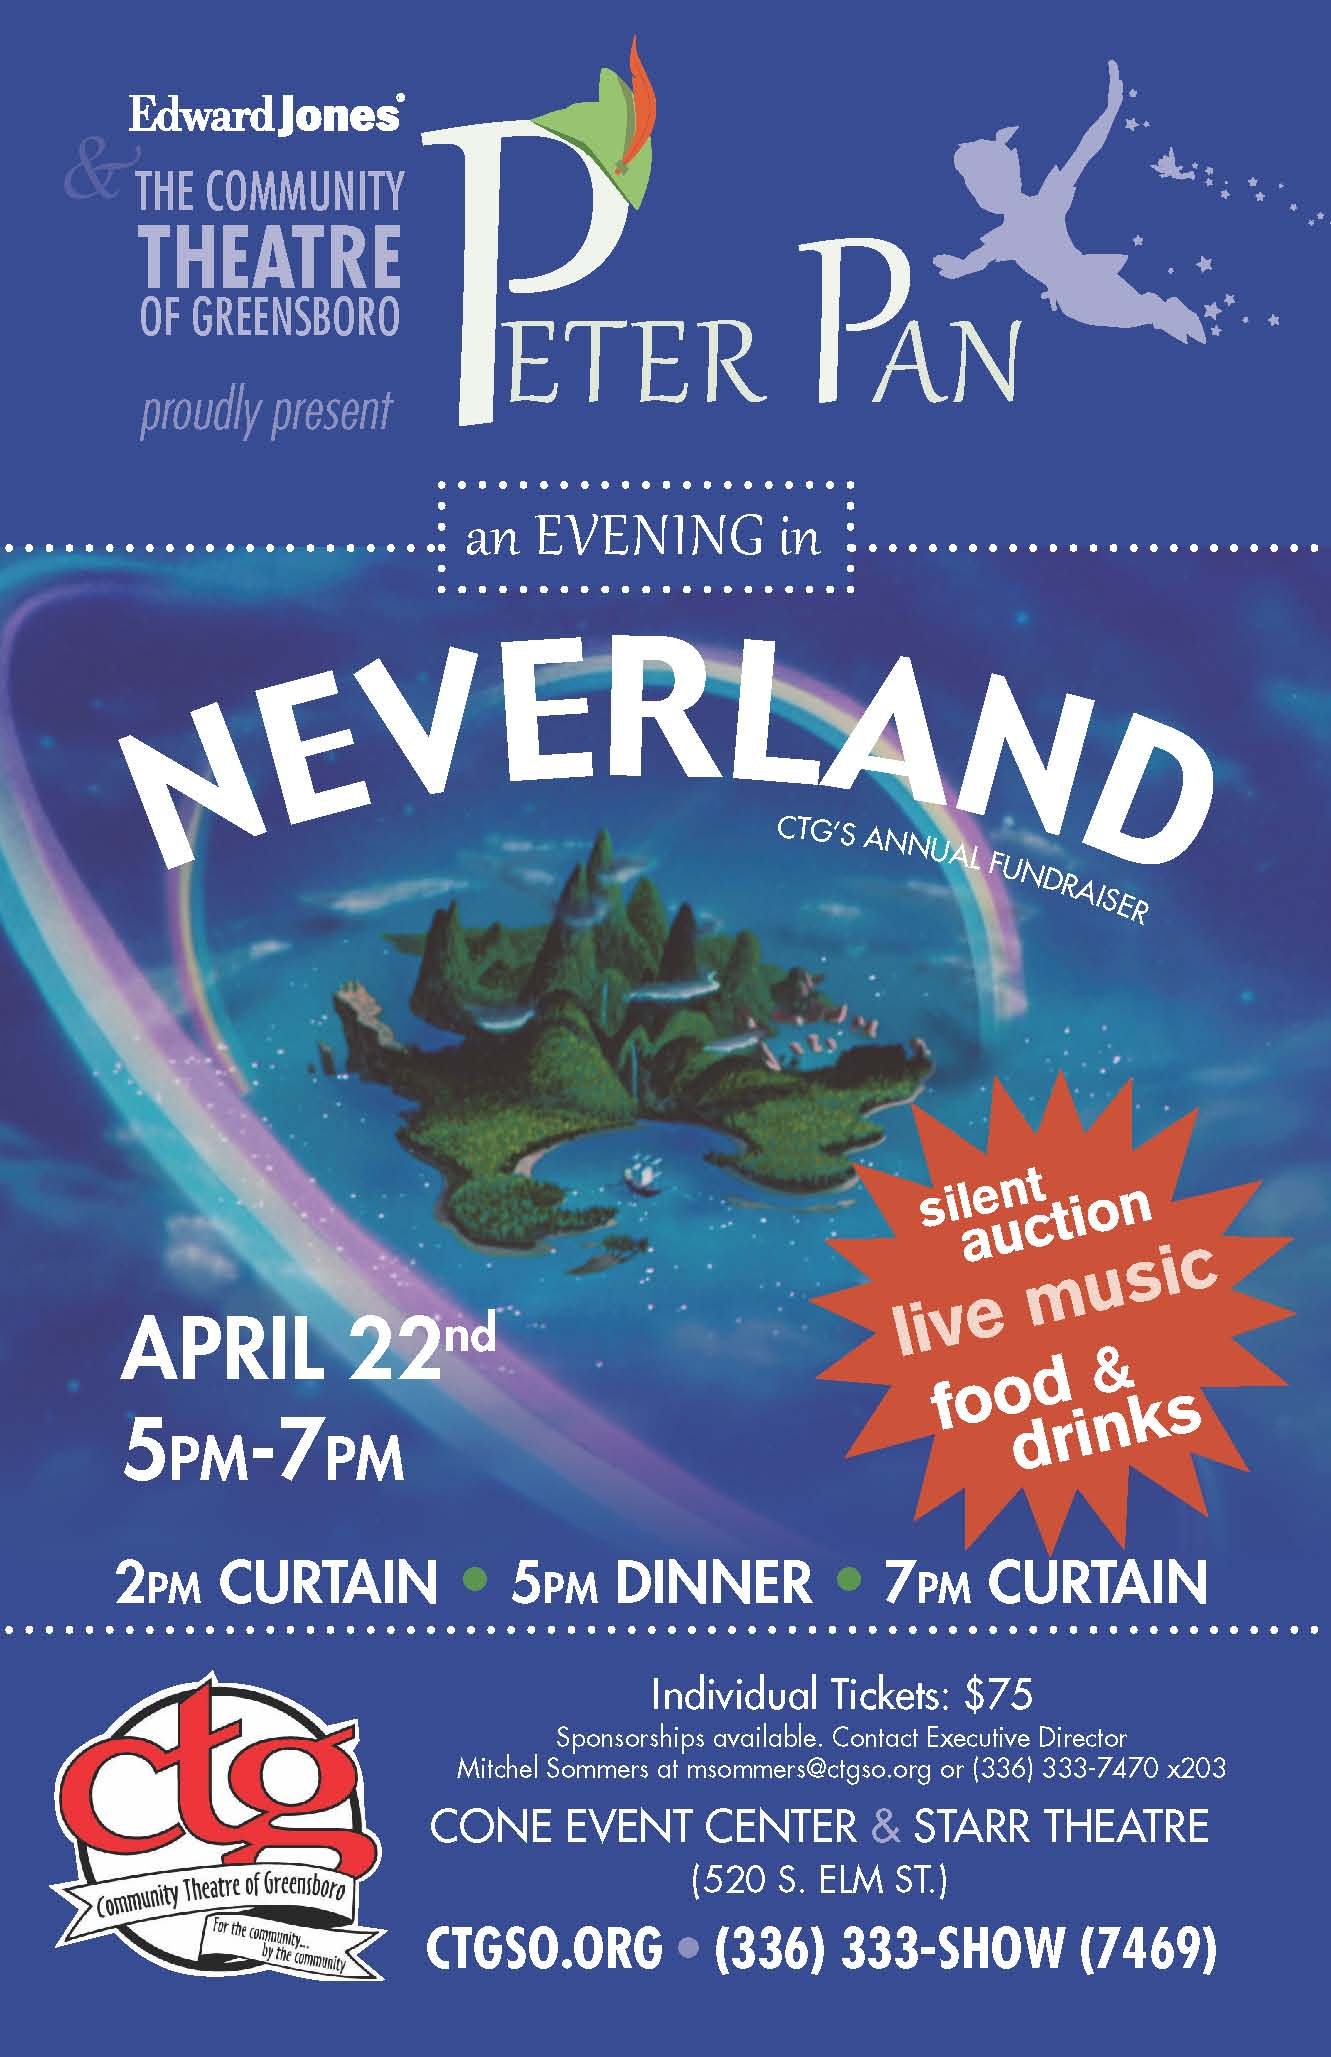 Peter Pan Annual Fundraiser